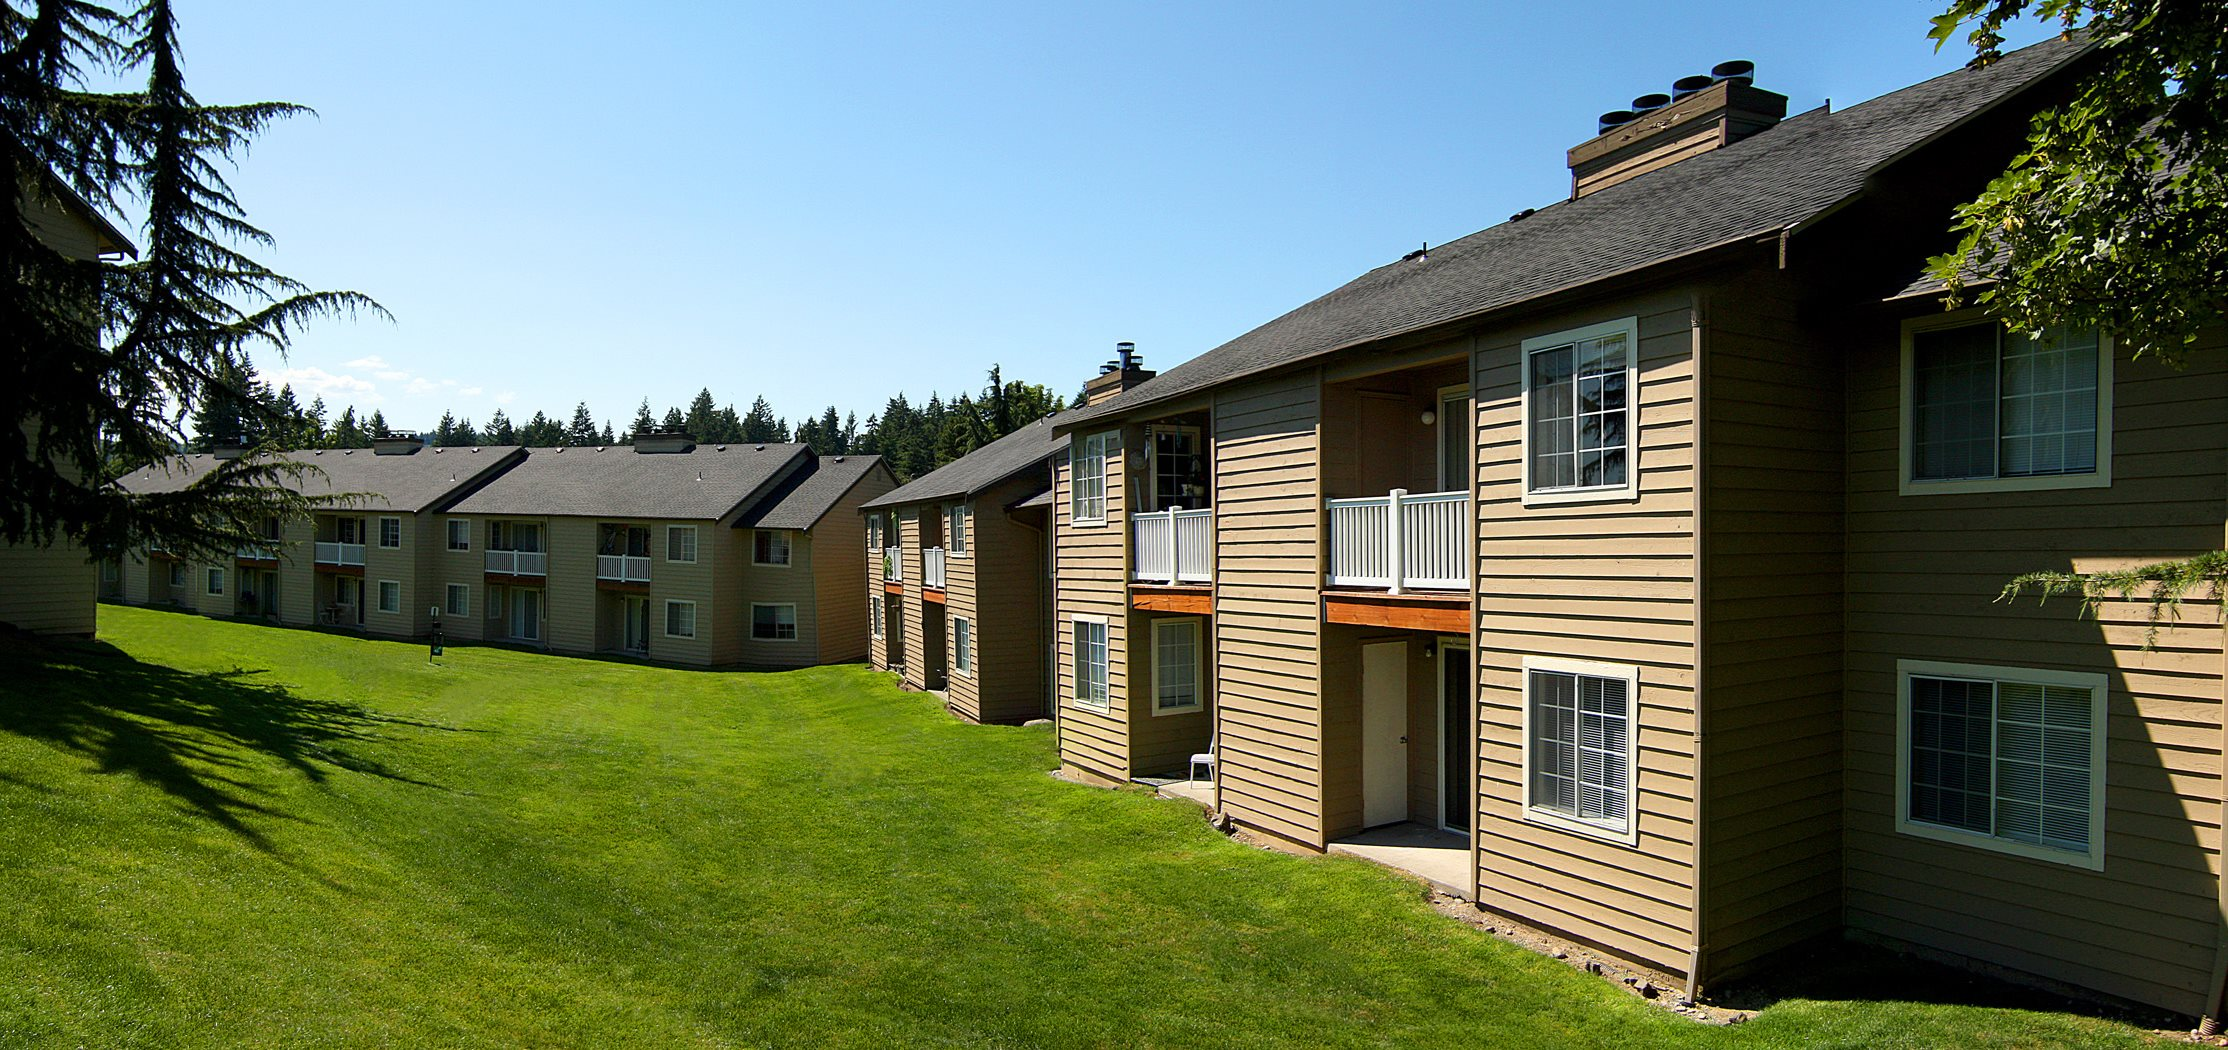 Black lake apartments apartments in olympia wa for Olympic homes